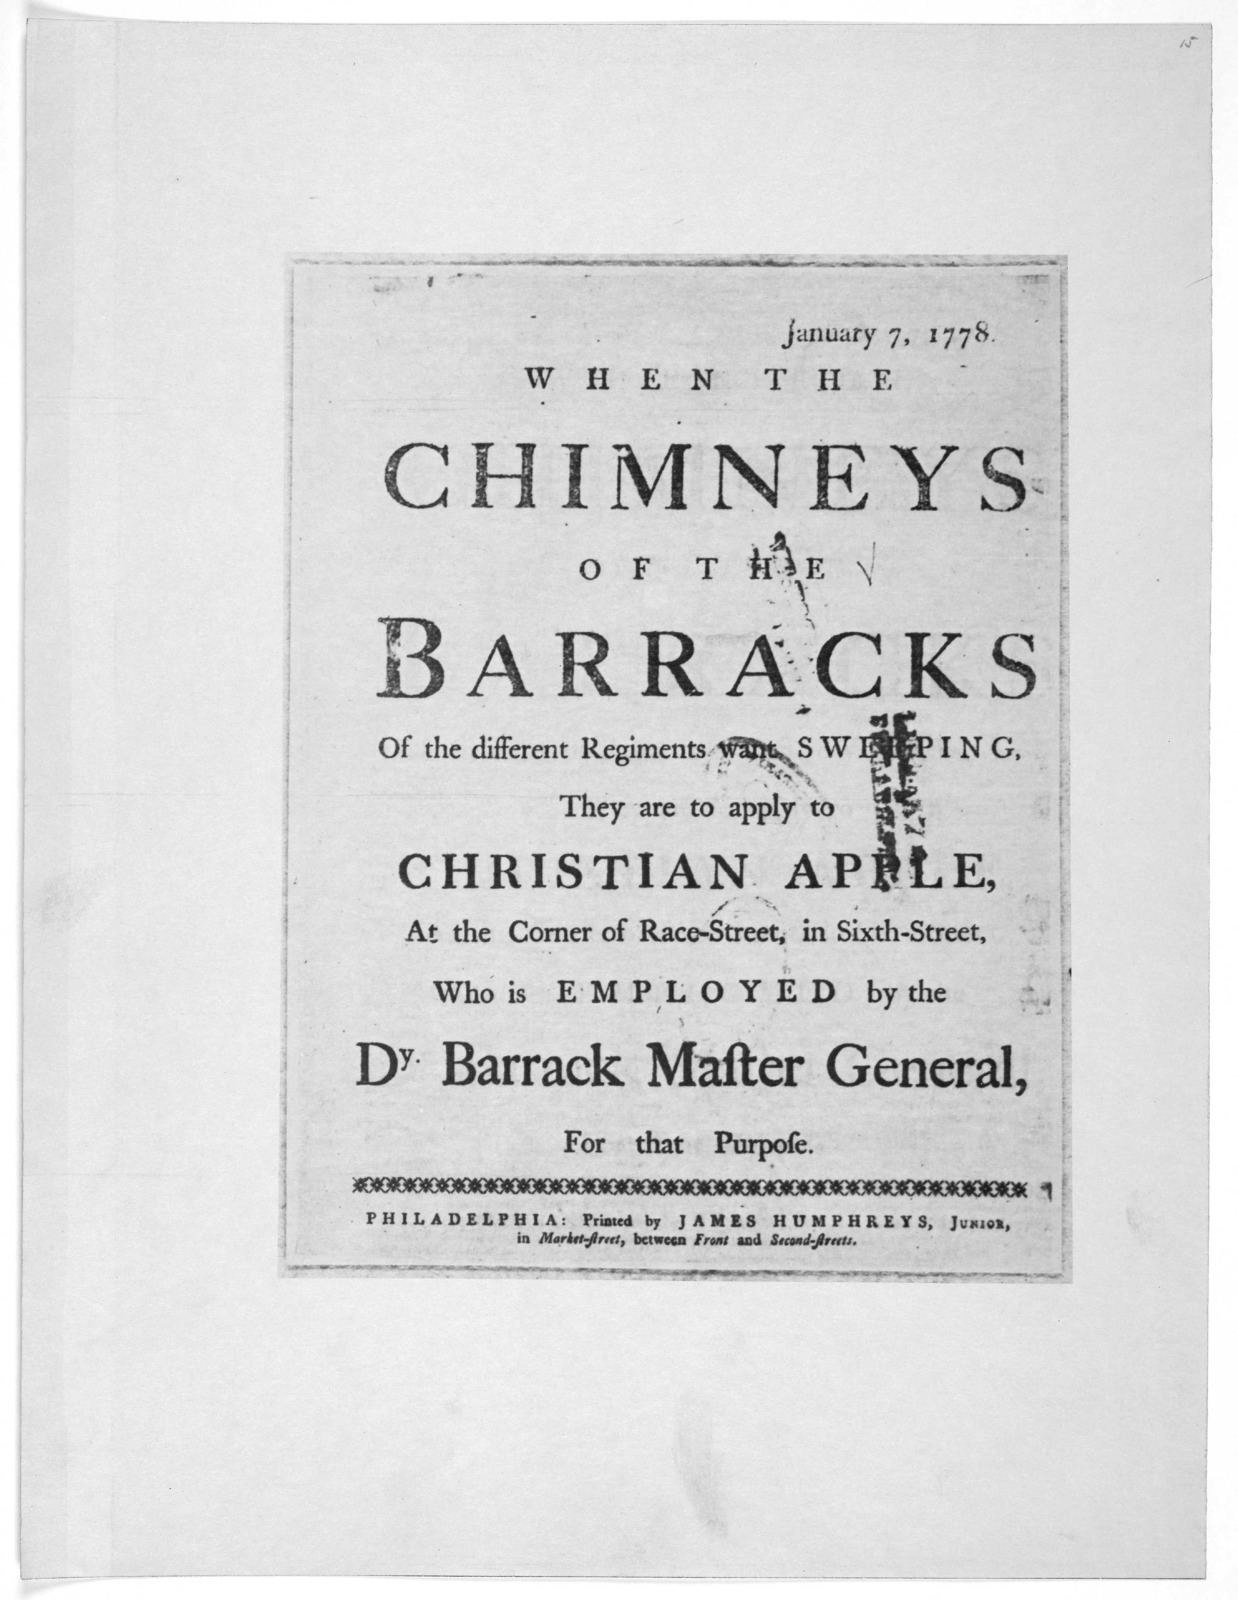 January 7, 1778. When the chimneys of the barracks of the different regiments want sweeping they are to apply to Christian Apple, at the corner of Race-Street, in Sixth-Street, who is employed by the Dy Barrack Master General, for that purpose.